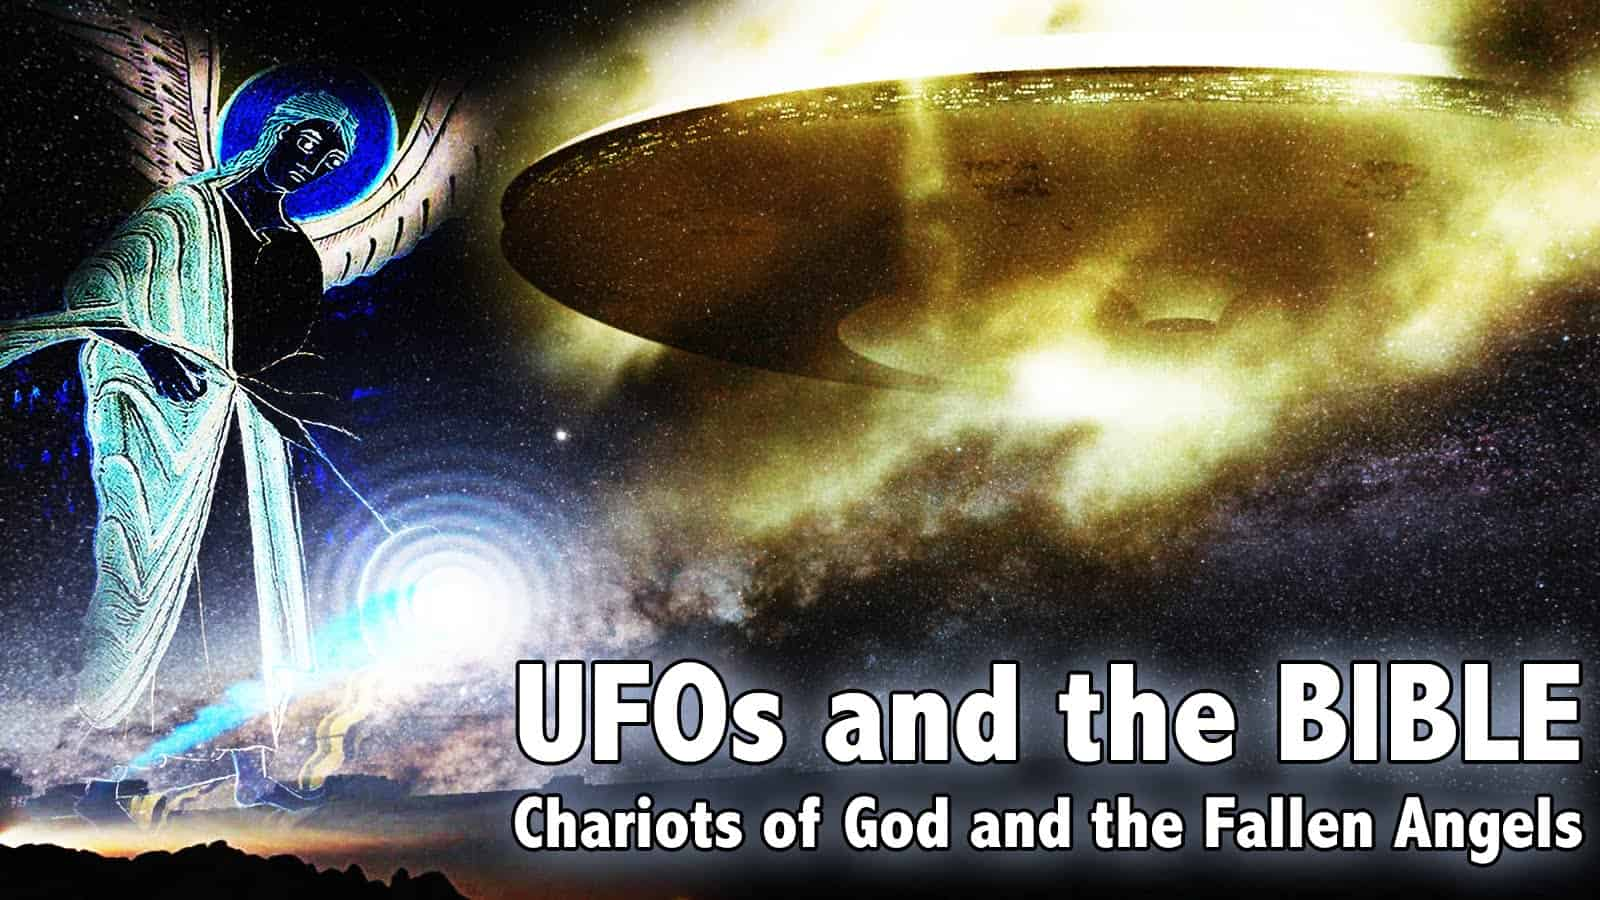 UFOs and the BIBLE: Chariots of God and Fallen Angels (Millstone, the Ephah, STS-75, Blue Beam)